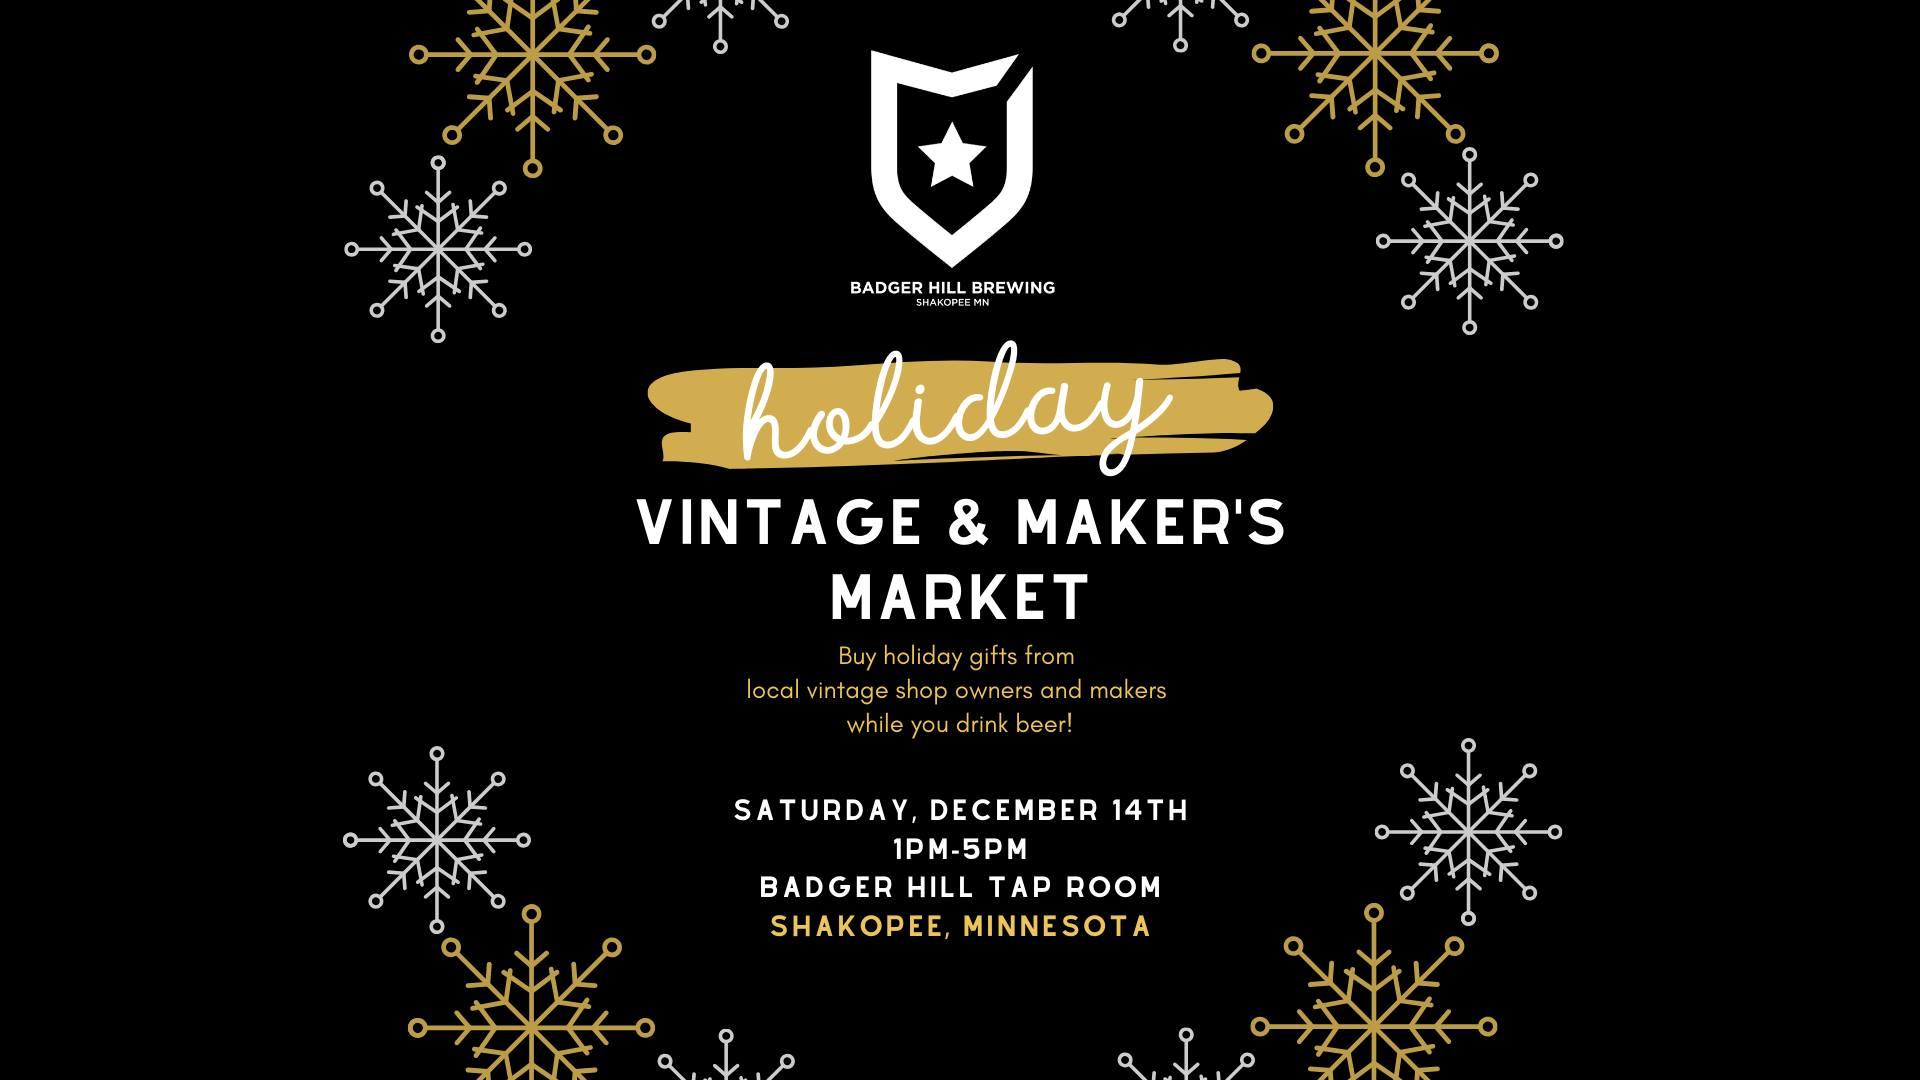 Holiday Vintage & Maker's Market